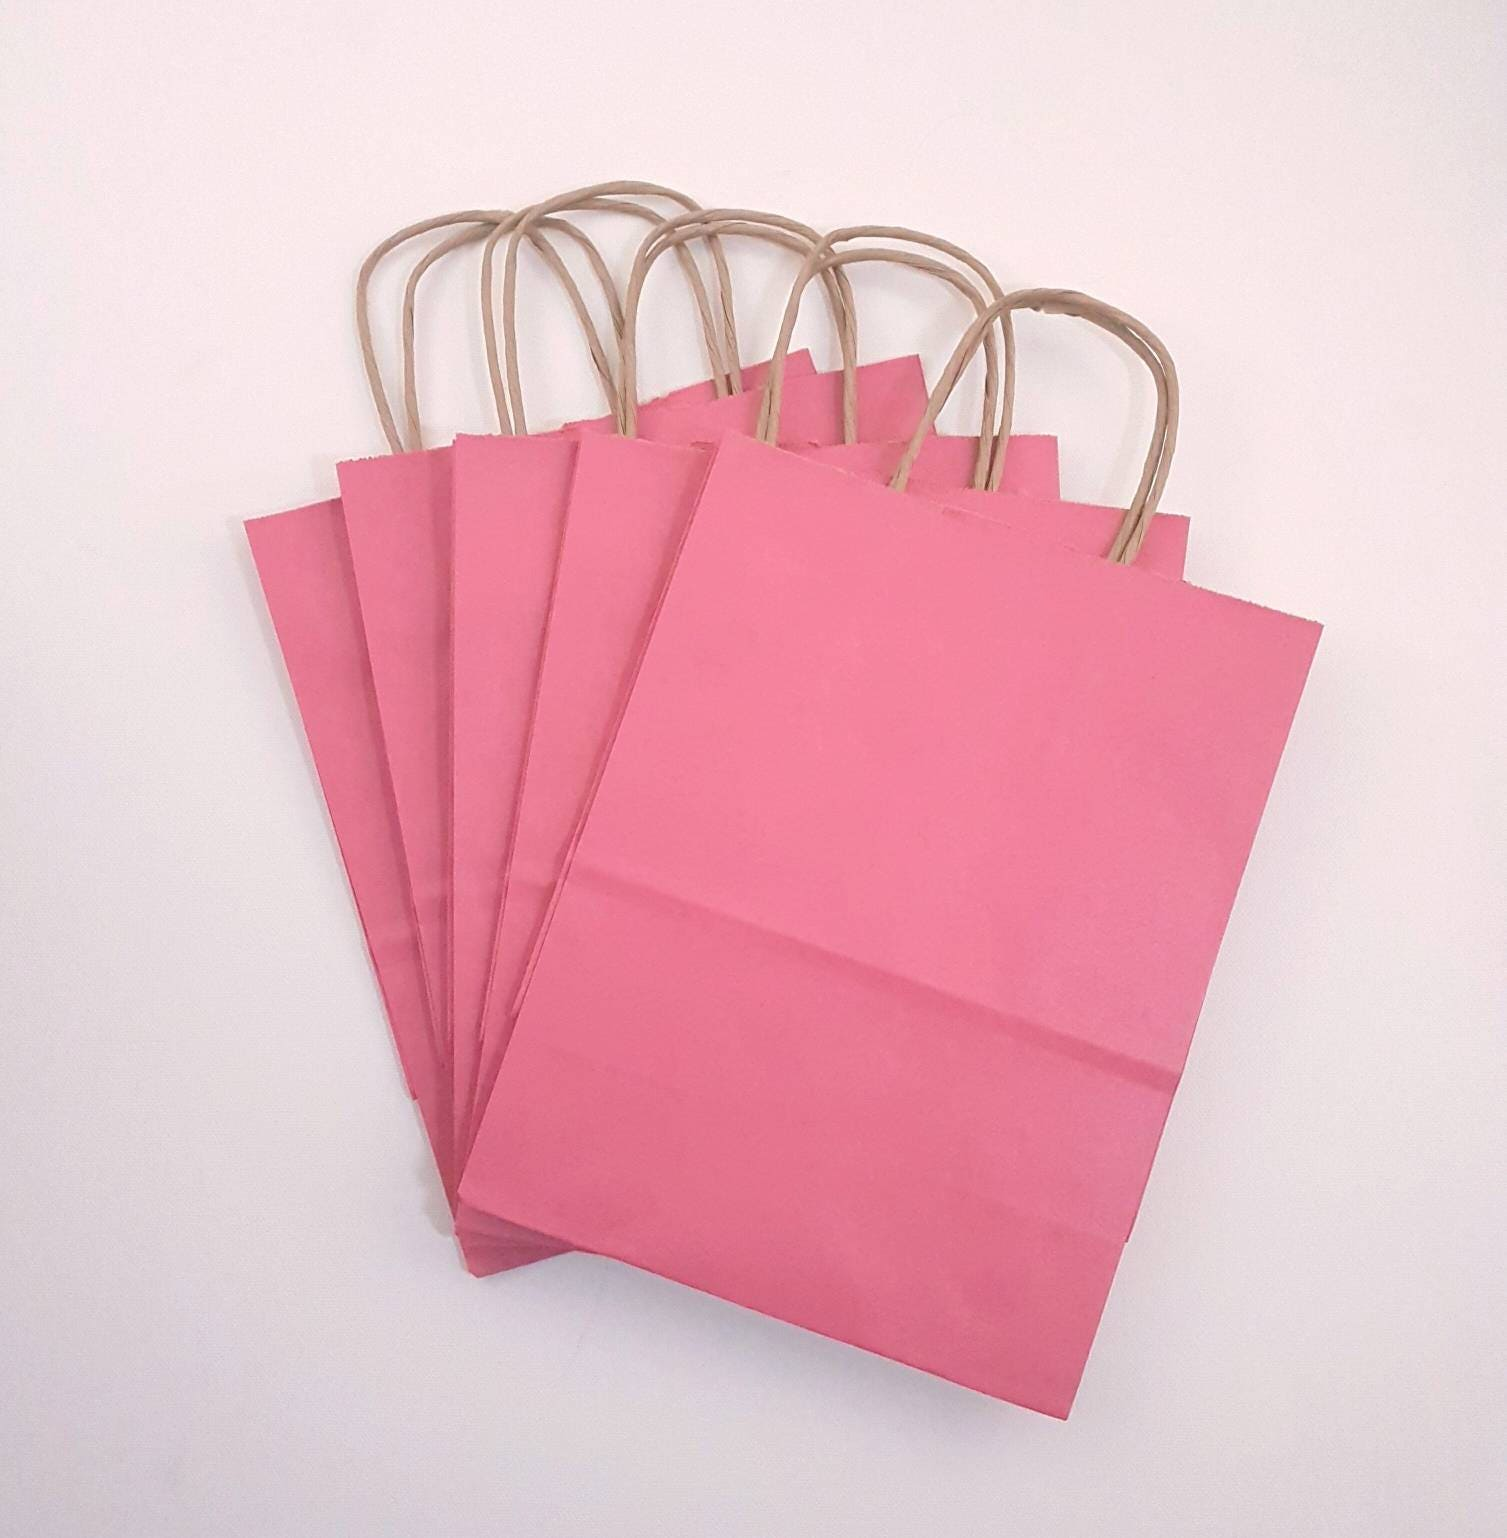 50 Pink Gift Bags, Shopping Bags, Paper Bags, Wedding Gift Favor ...